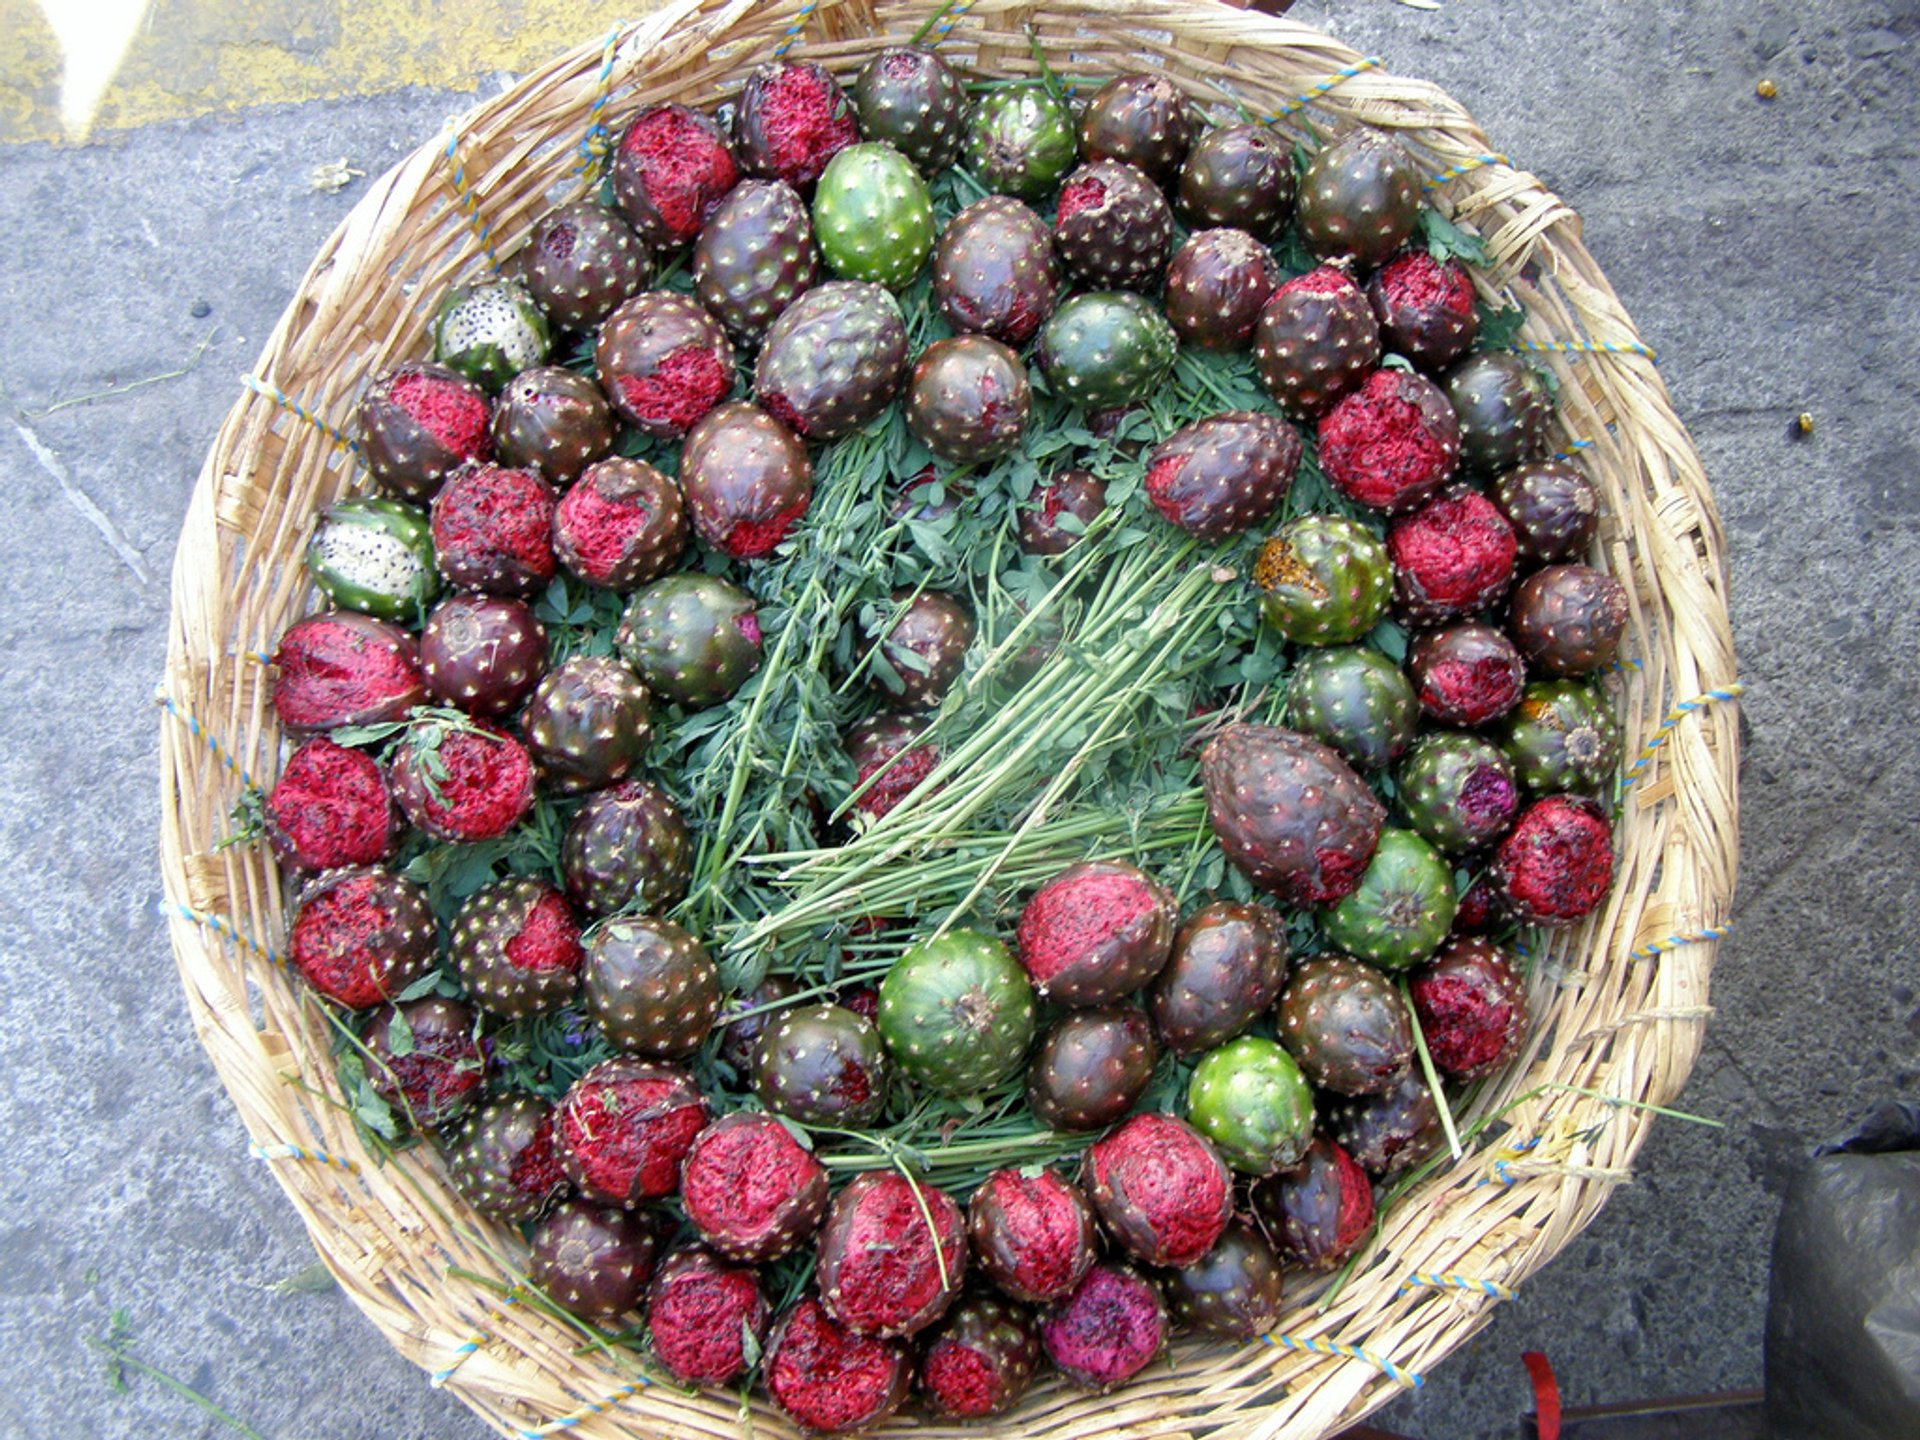 Best time to see Tuna (Prickly Pear) in Mexico 2020